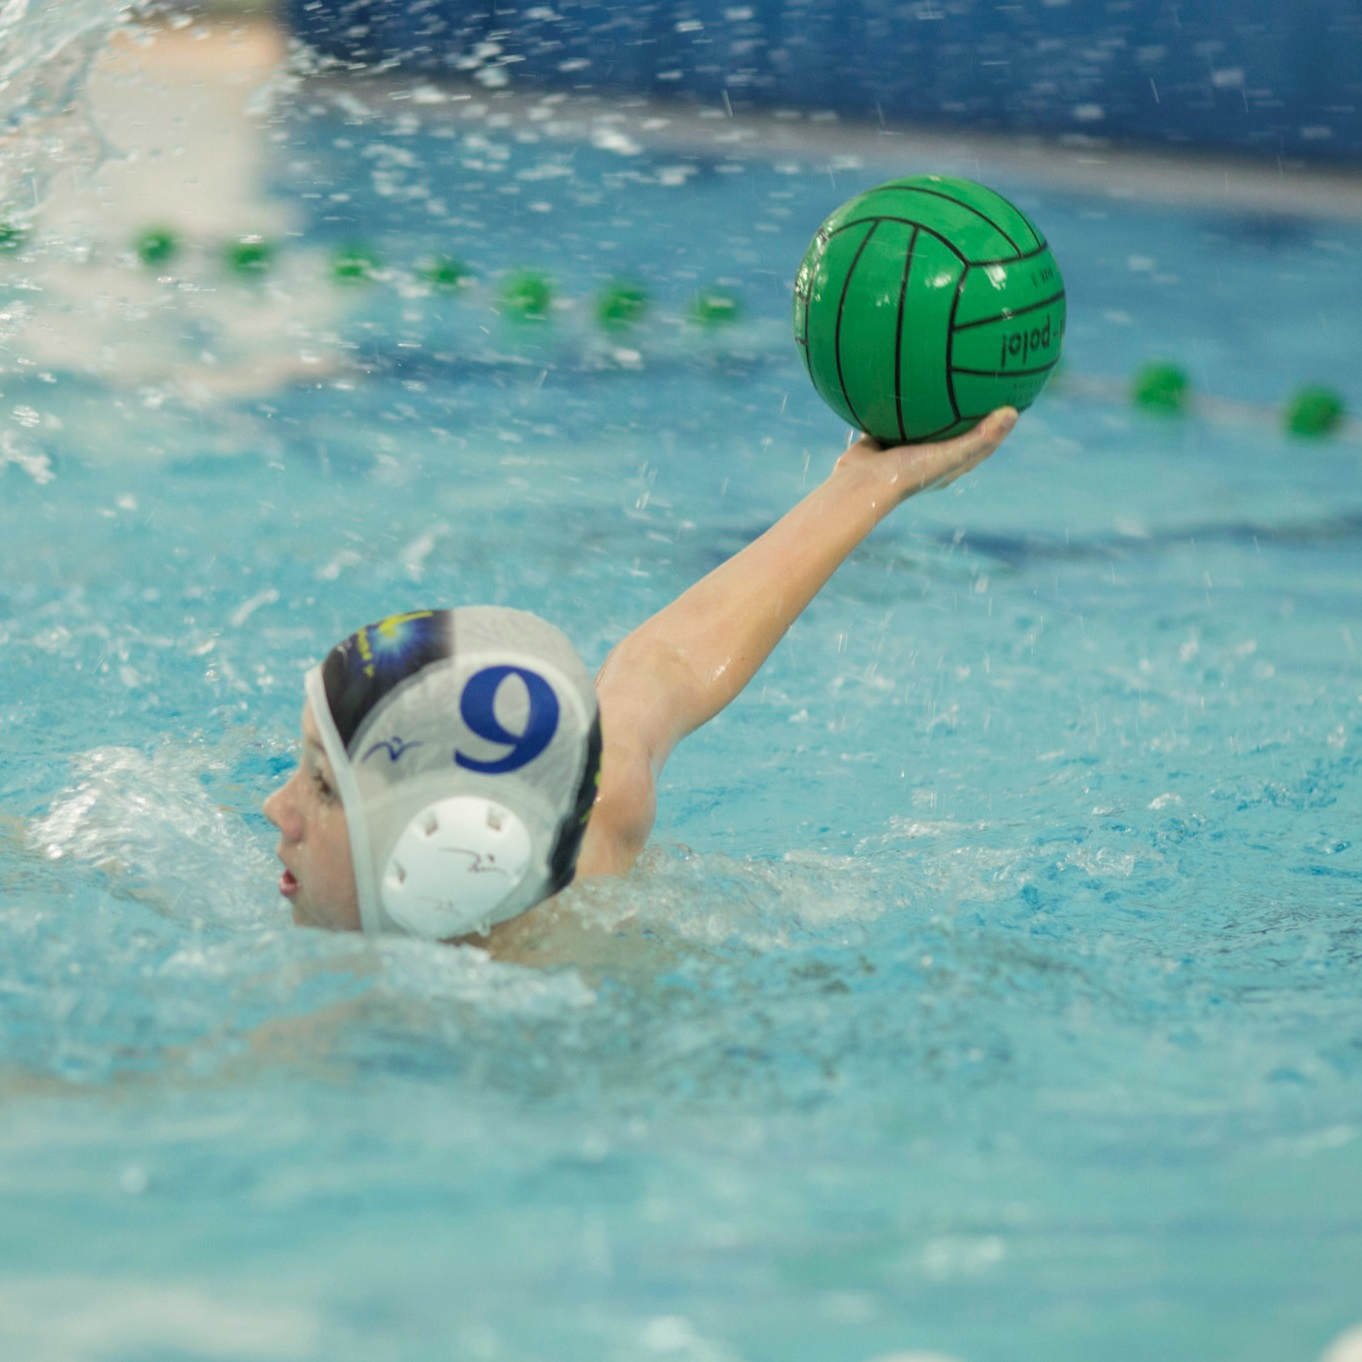 WarringtonWaterpolo+%28161+of+203%29.jpg